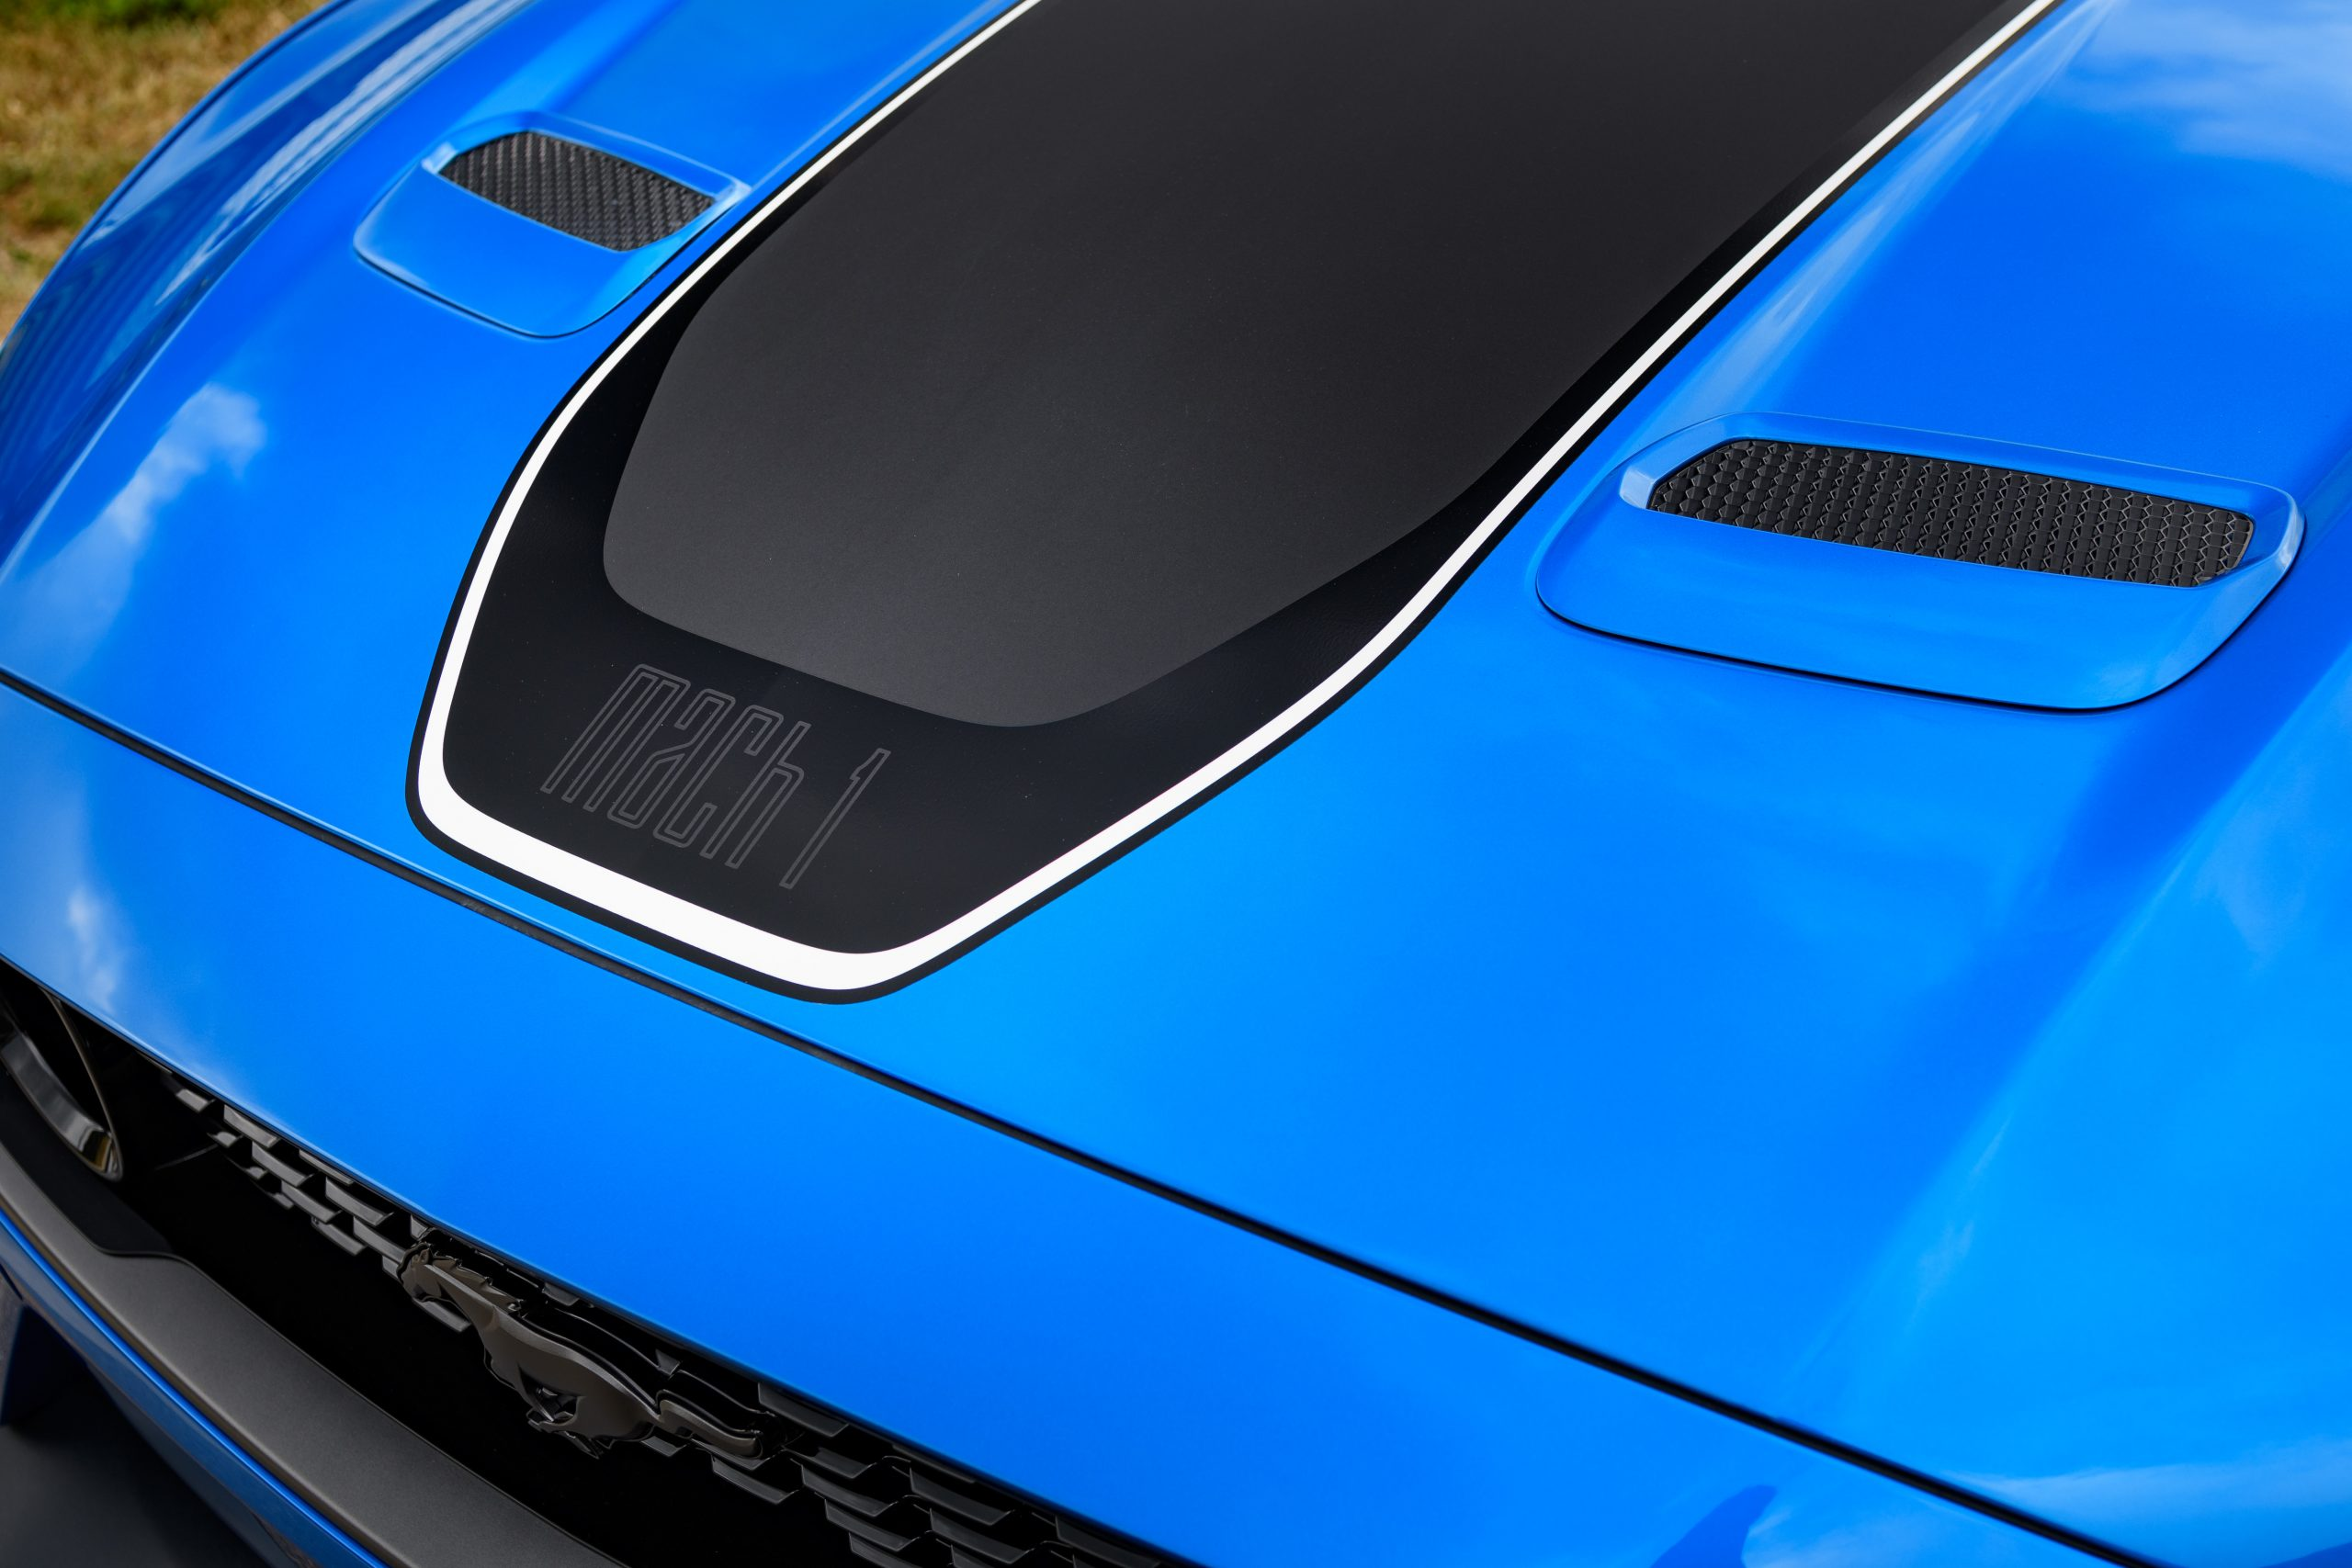 2021 Ford Mustang Mach 1 logo hood graphic